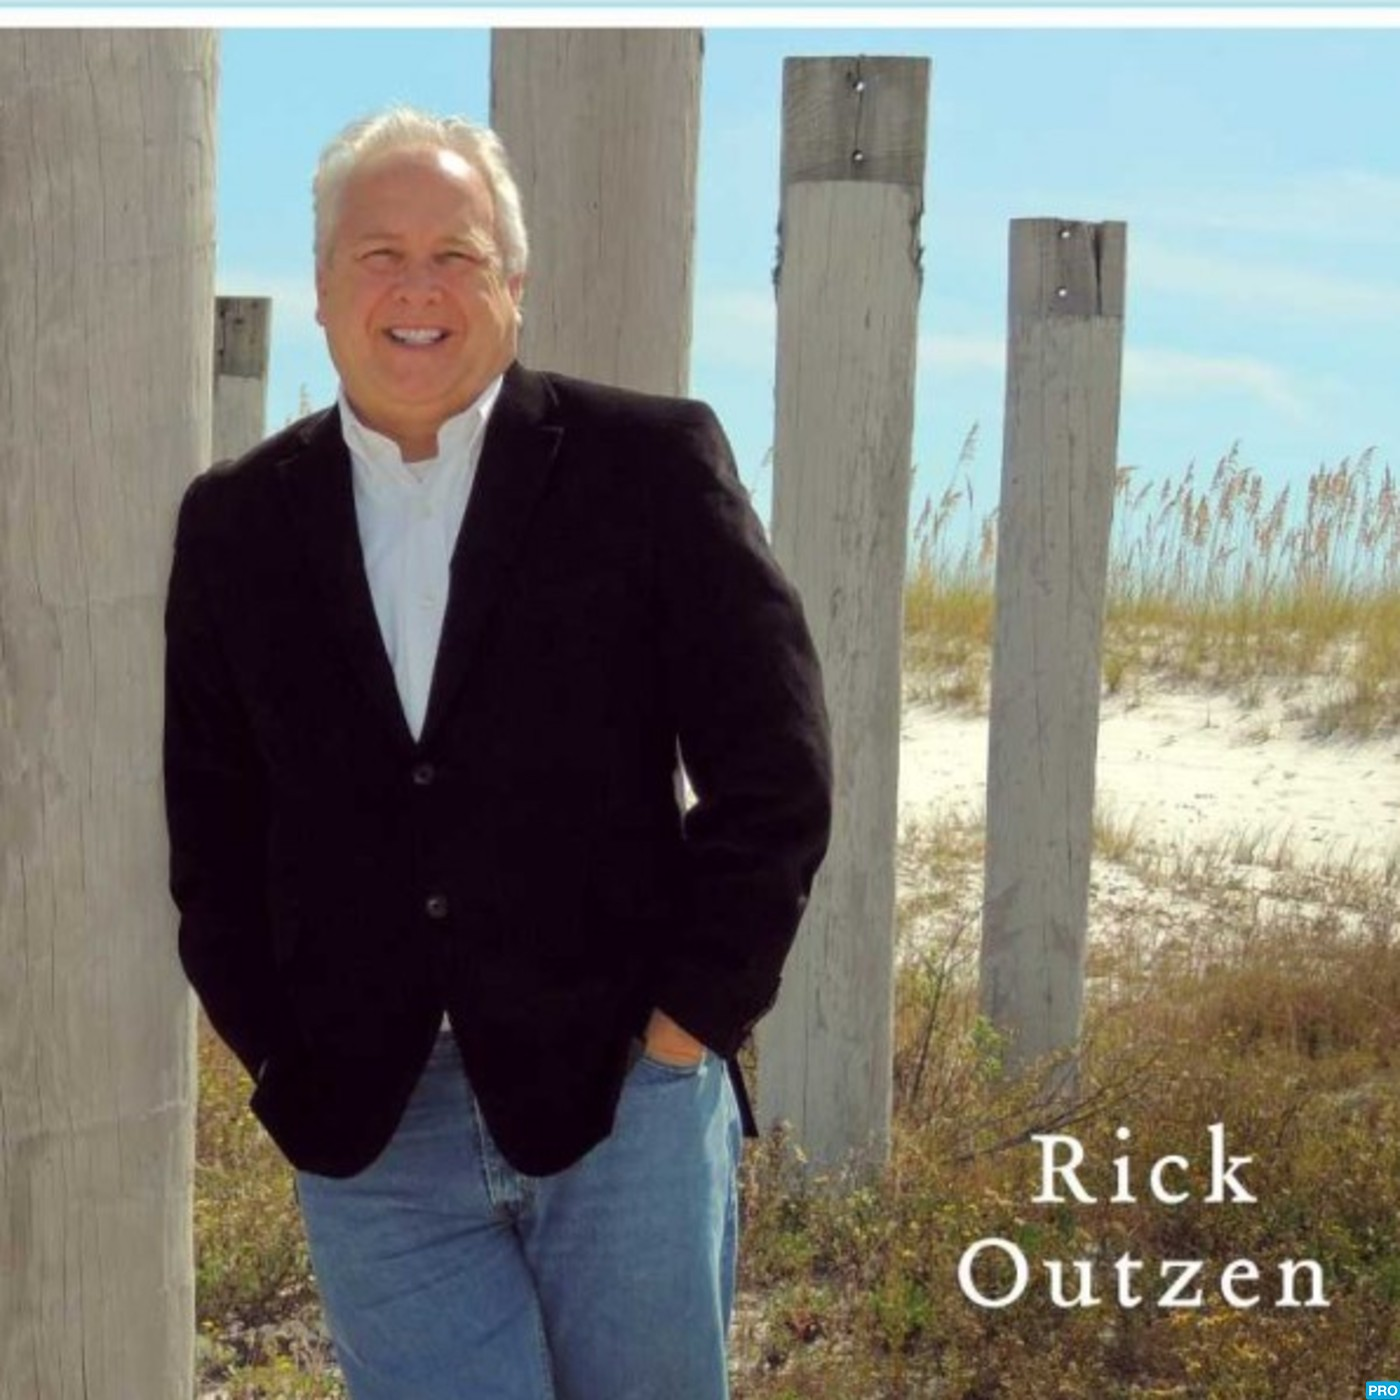 Pensacola Speaks: Rick Outzen's Podcast